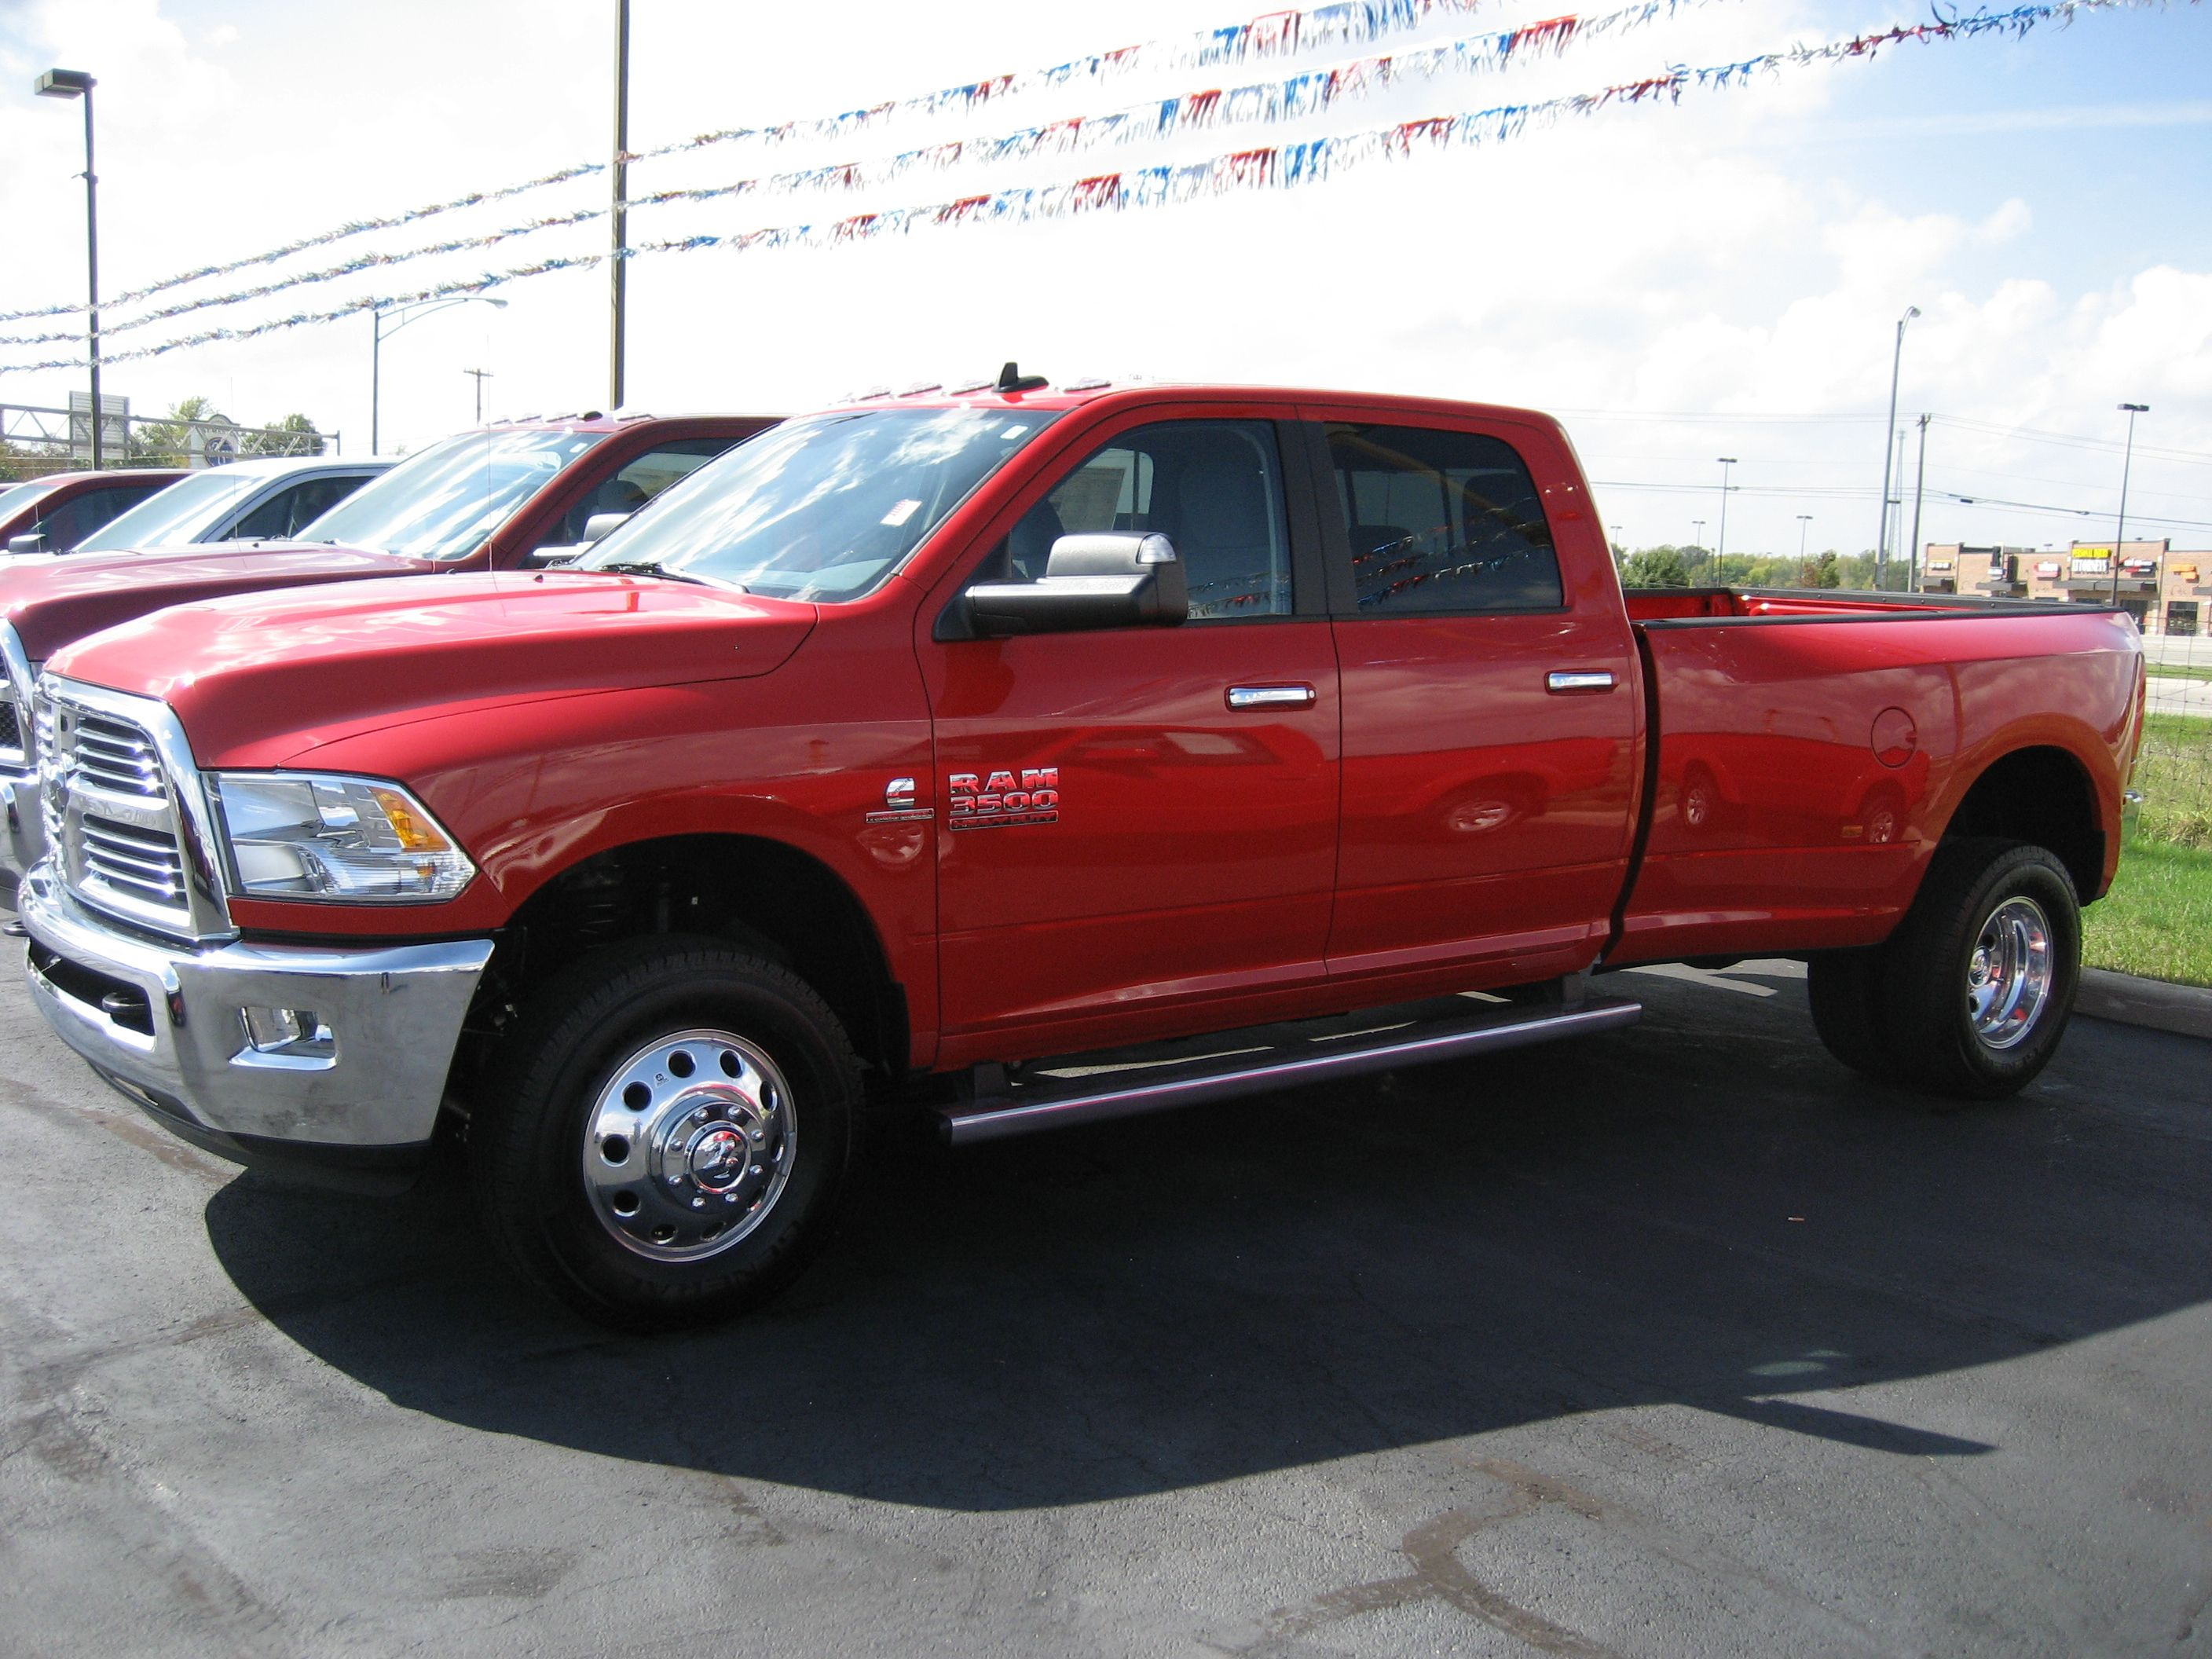 1000 images about ram on pinterest dodge ram trucks trucks and 2014 ram 1500